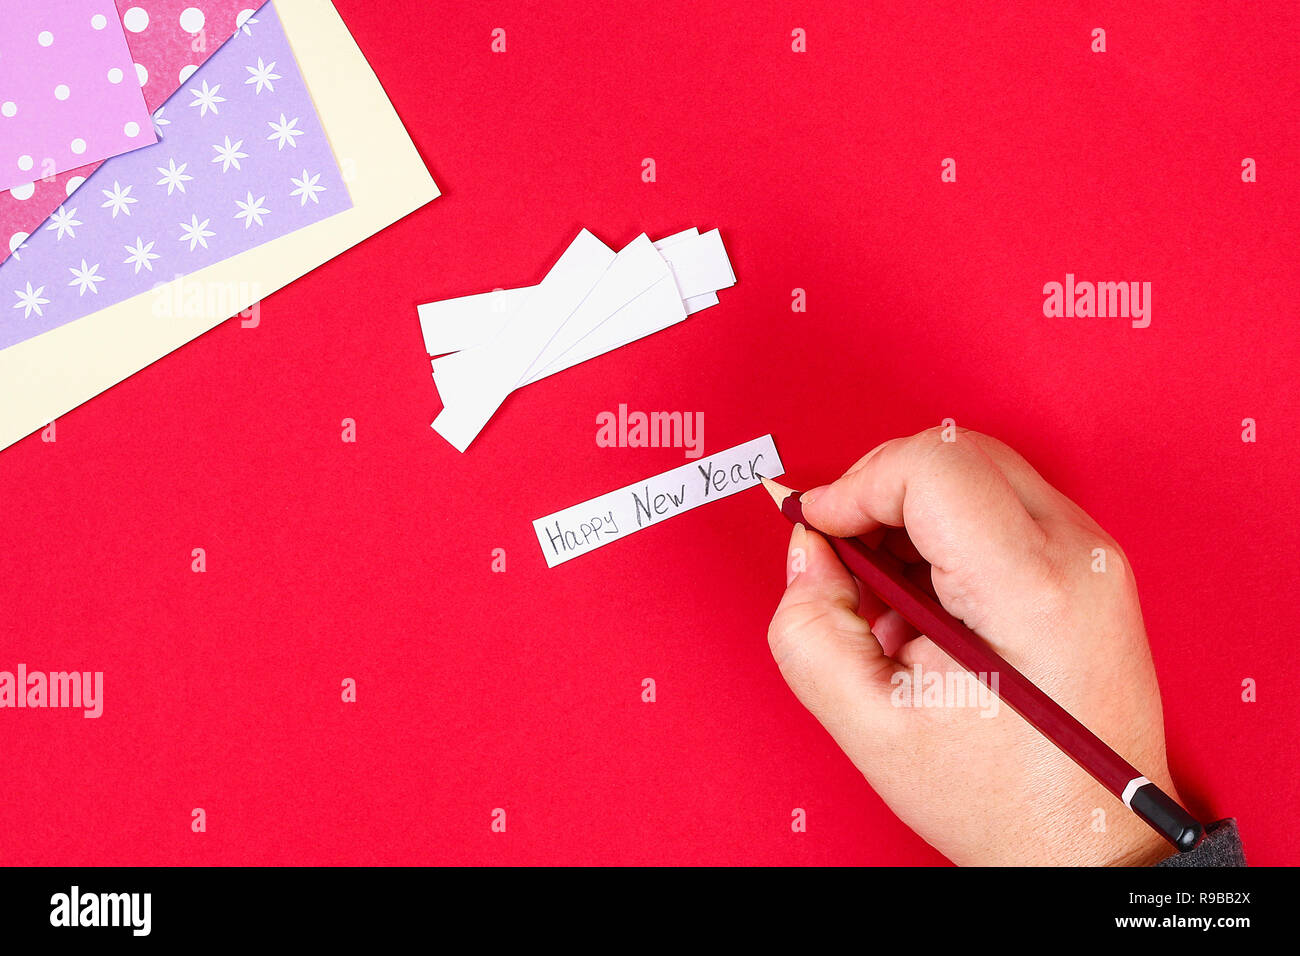 Diy Cookie With Predictions On A Red Background Gift Ideas Decor